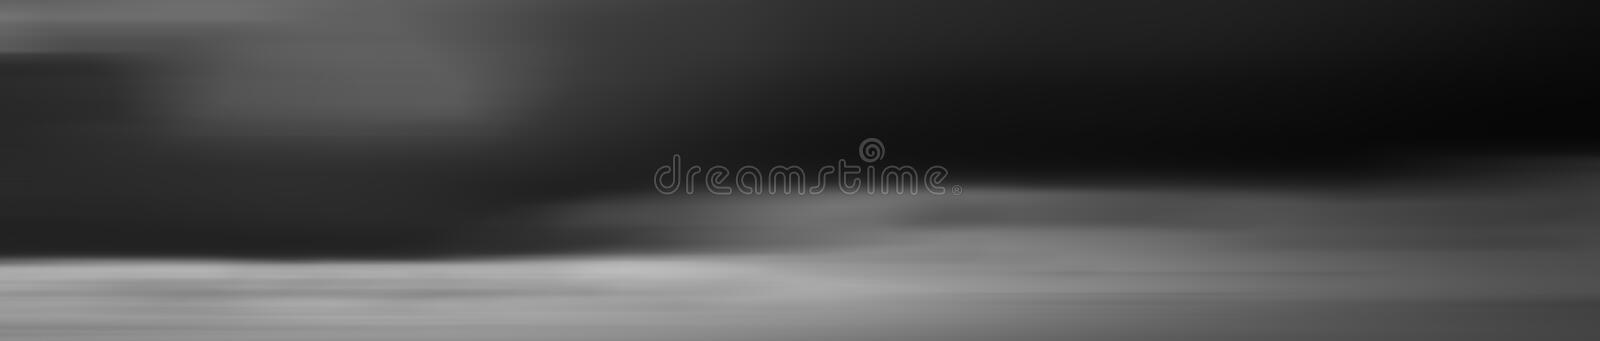 Motion blur effect of sky in black and white for background stock images